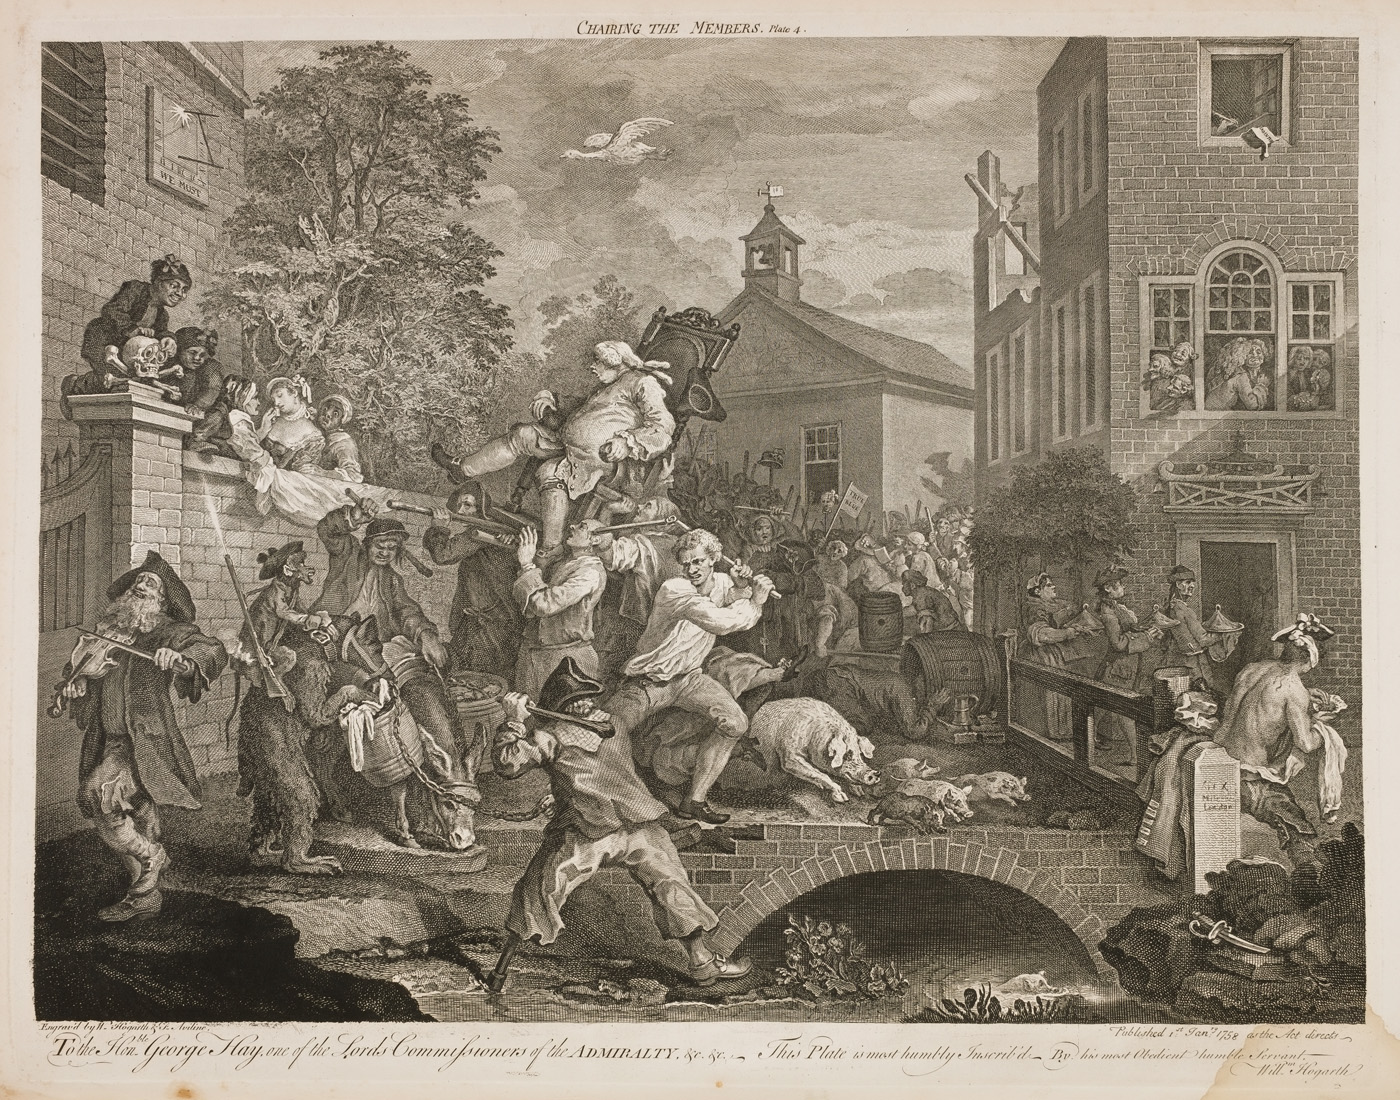 William Hogarth - Four prints of an election - Chairing the member